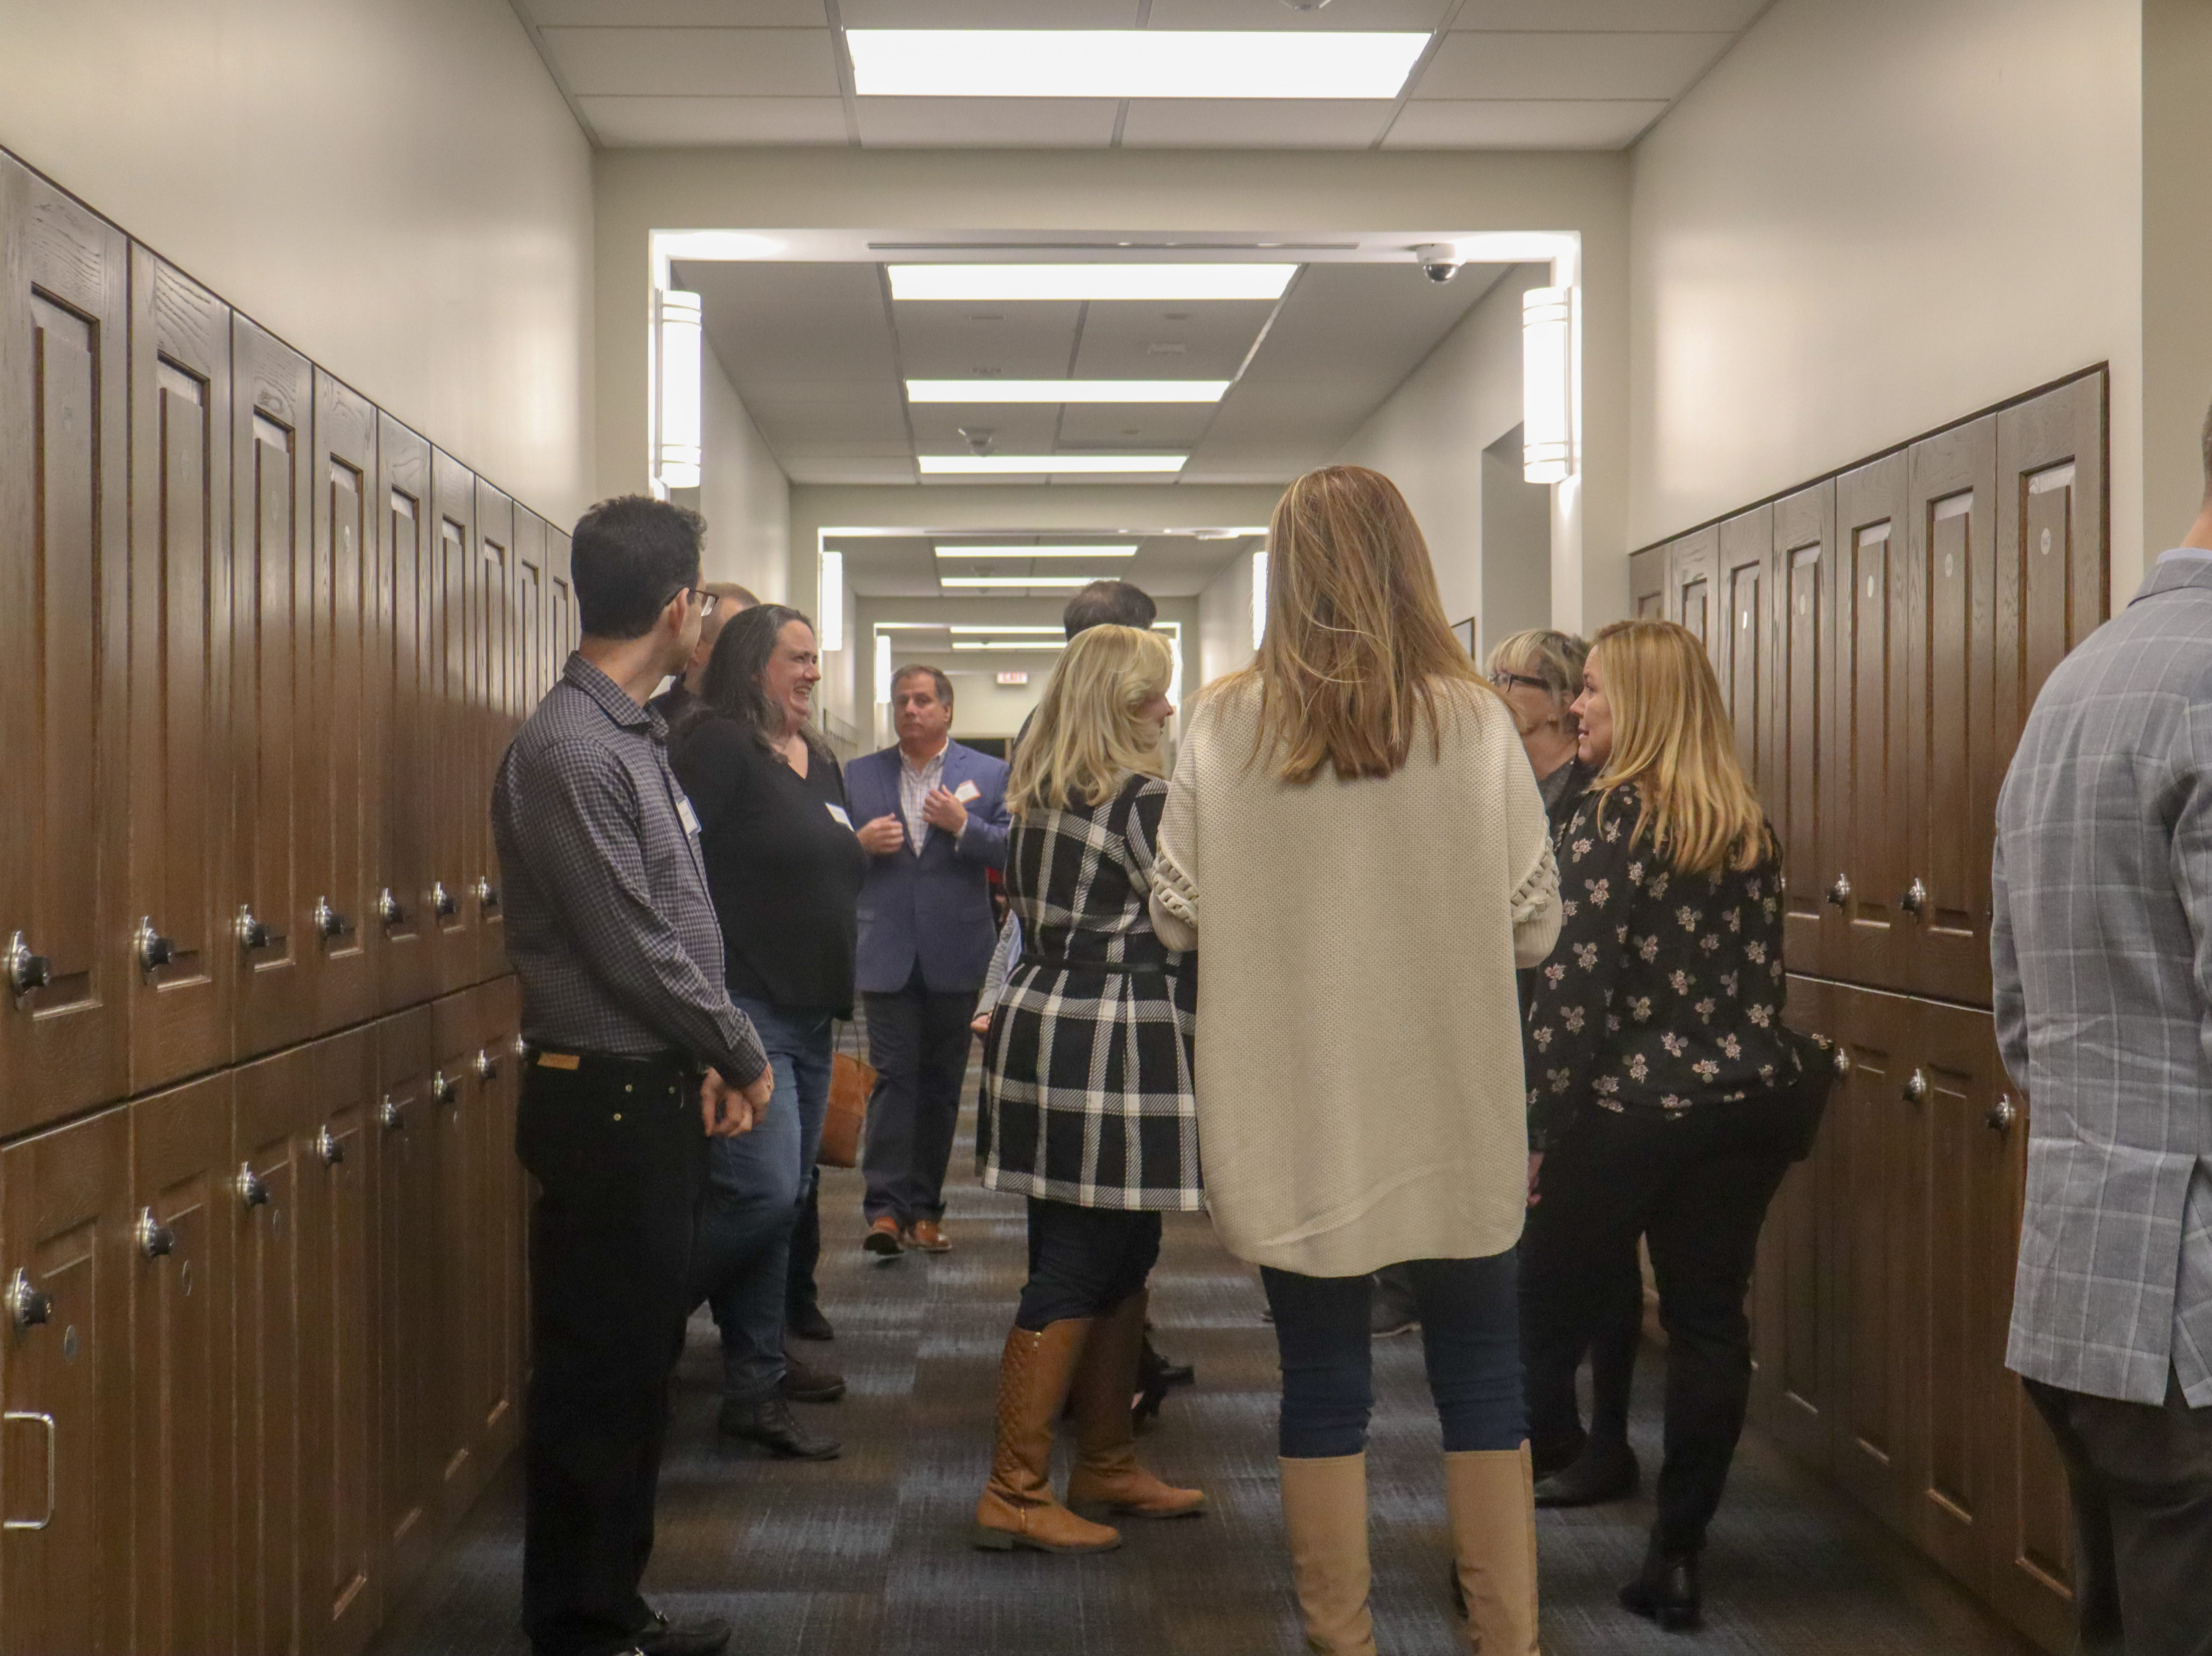 People walk the hallway at the unveiling of the new academic wing at the all-girls' private school on Fort Monmouth on Jan. 25, 2019.